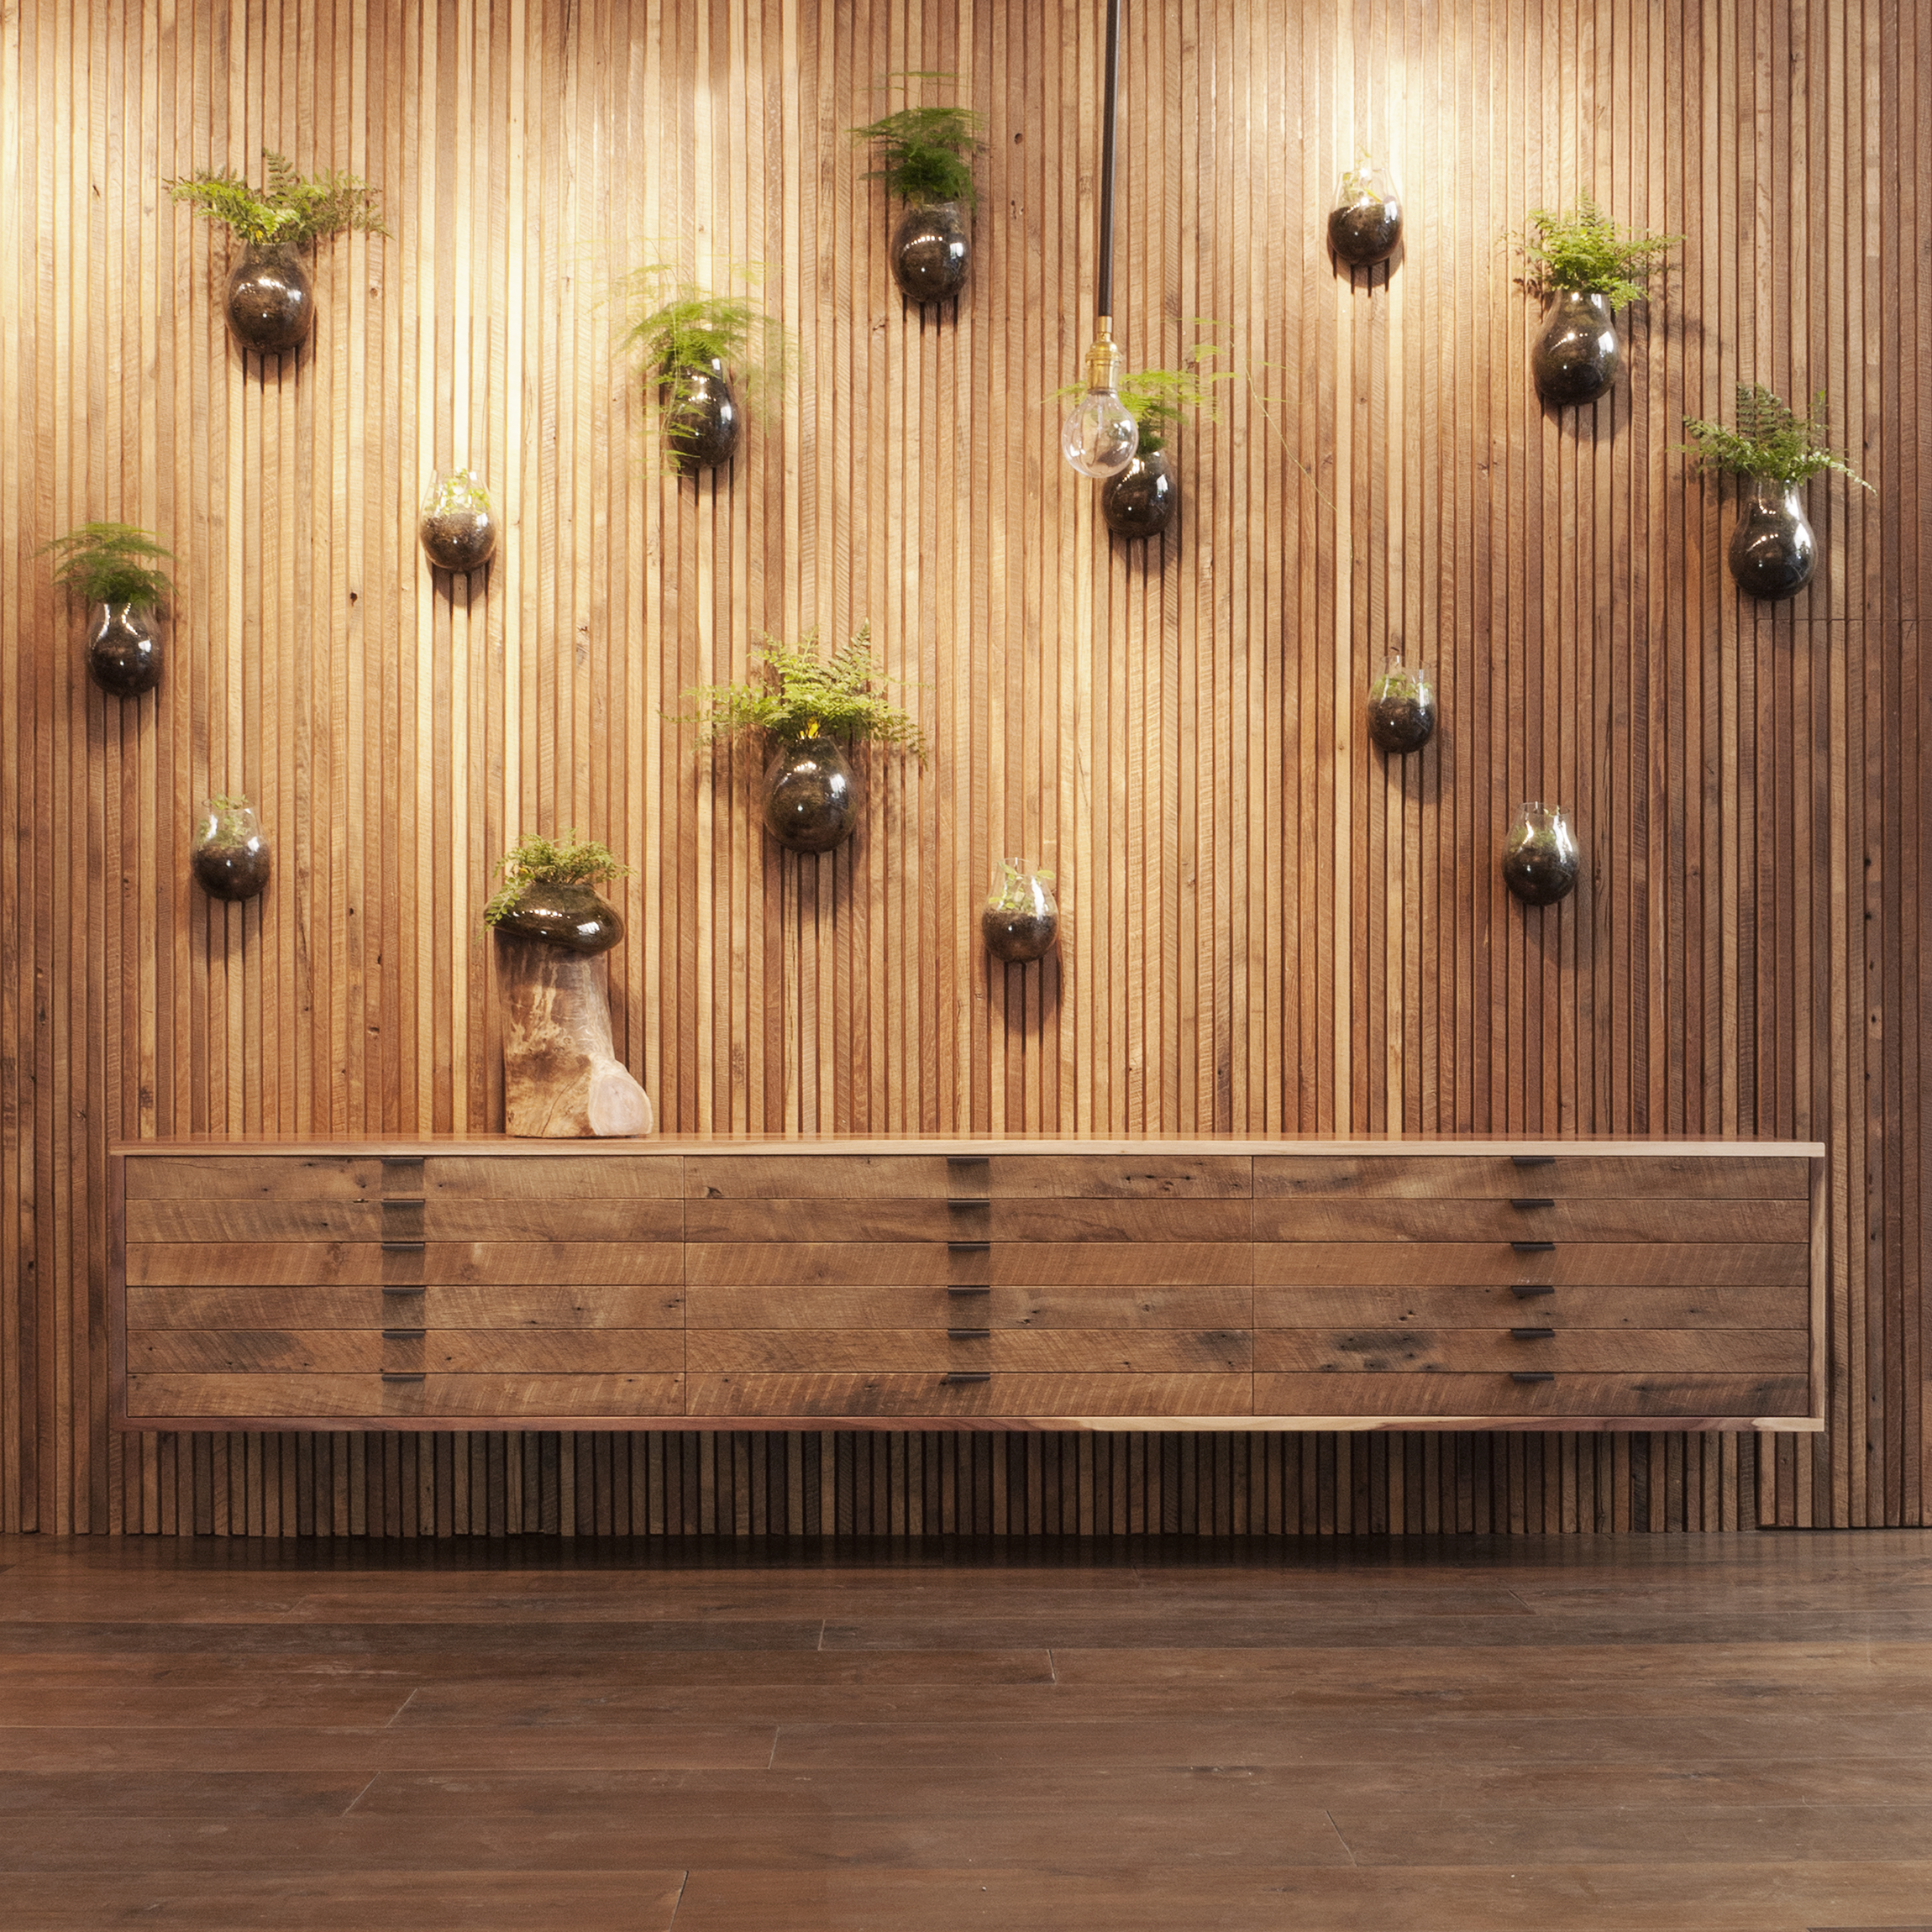 10-foot-credenza-wall-mounted